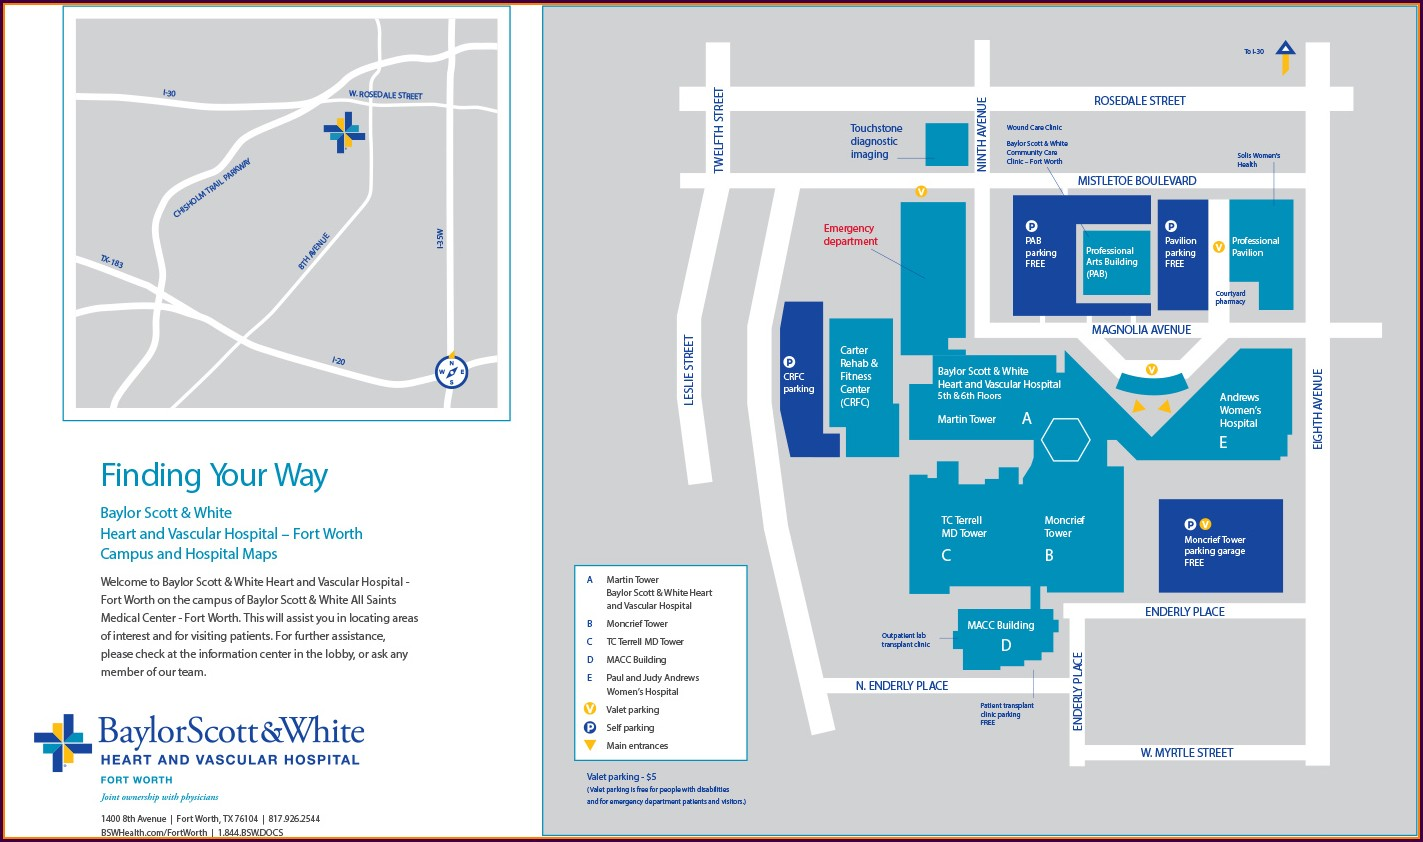 Temple Texas Baylor Scott And White Temple Hospital Map